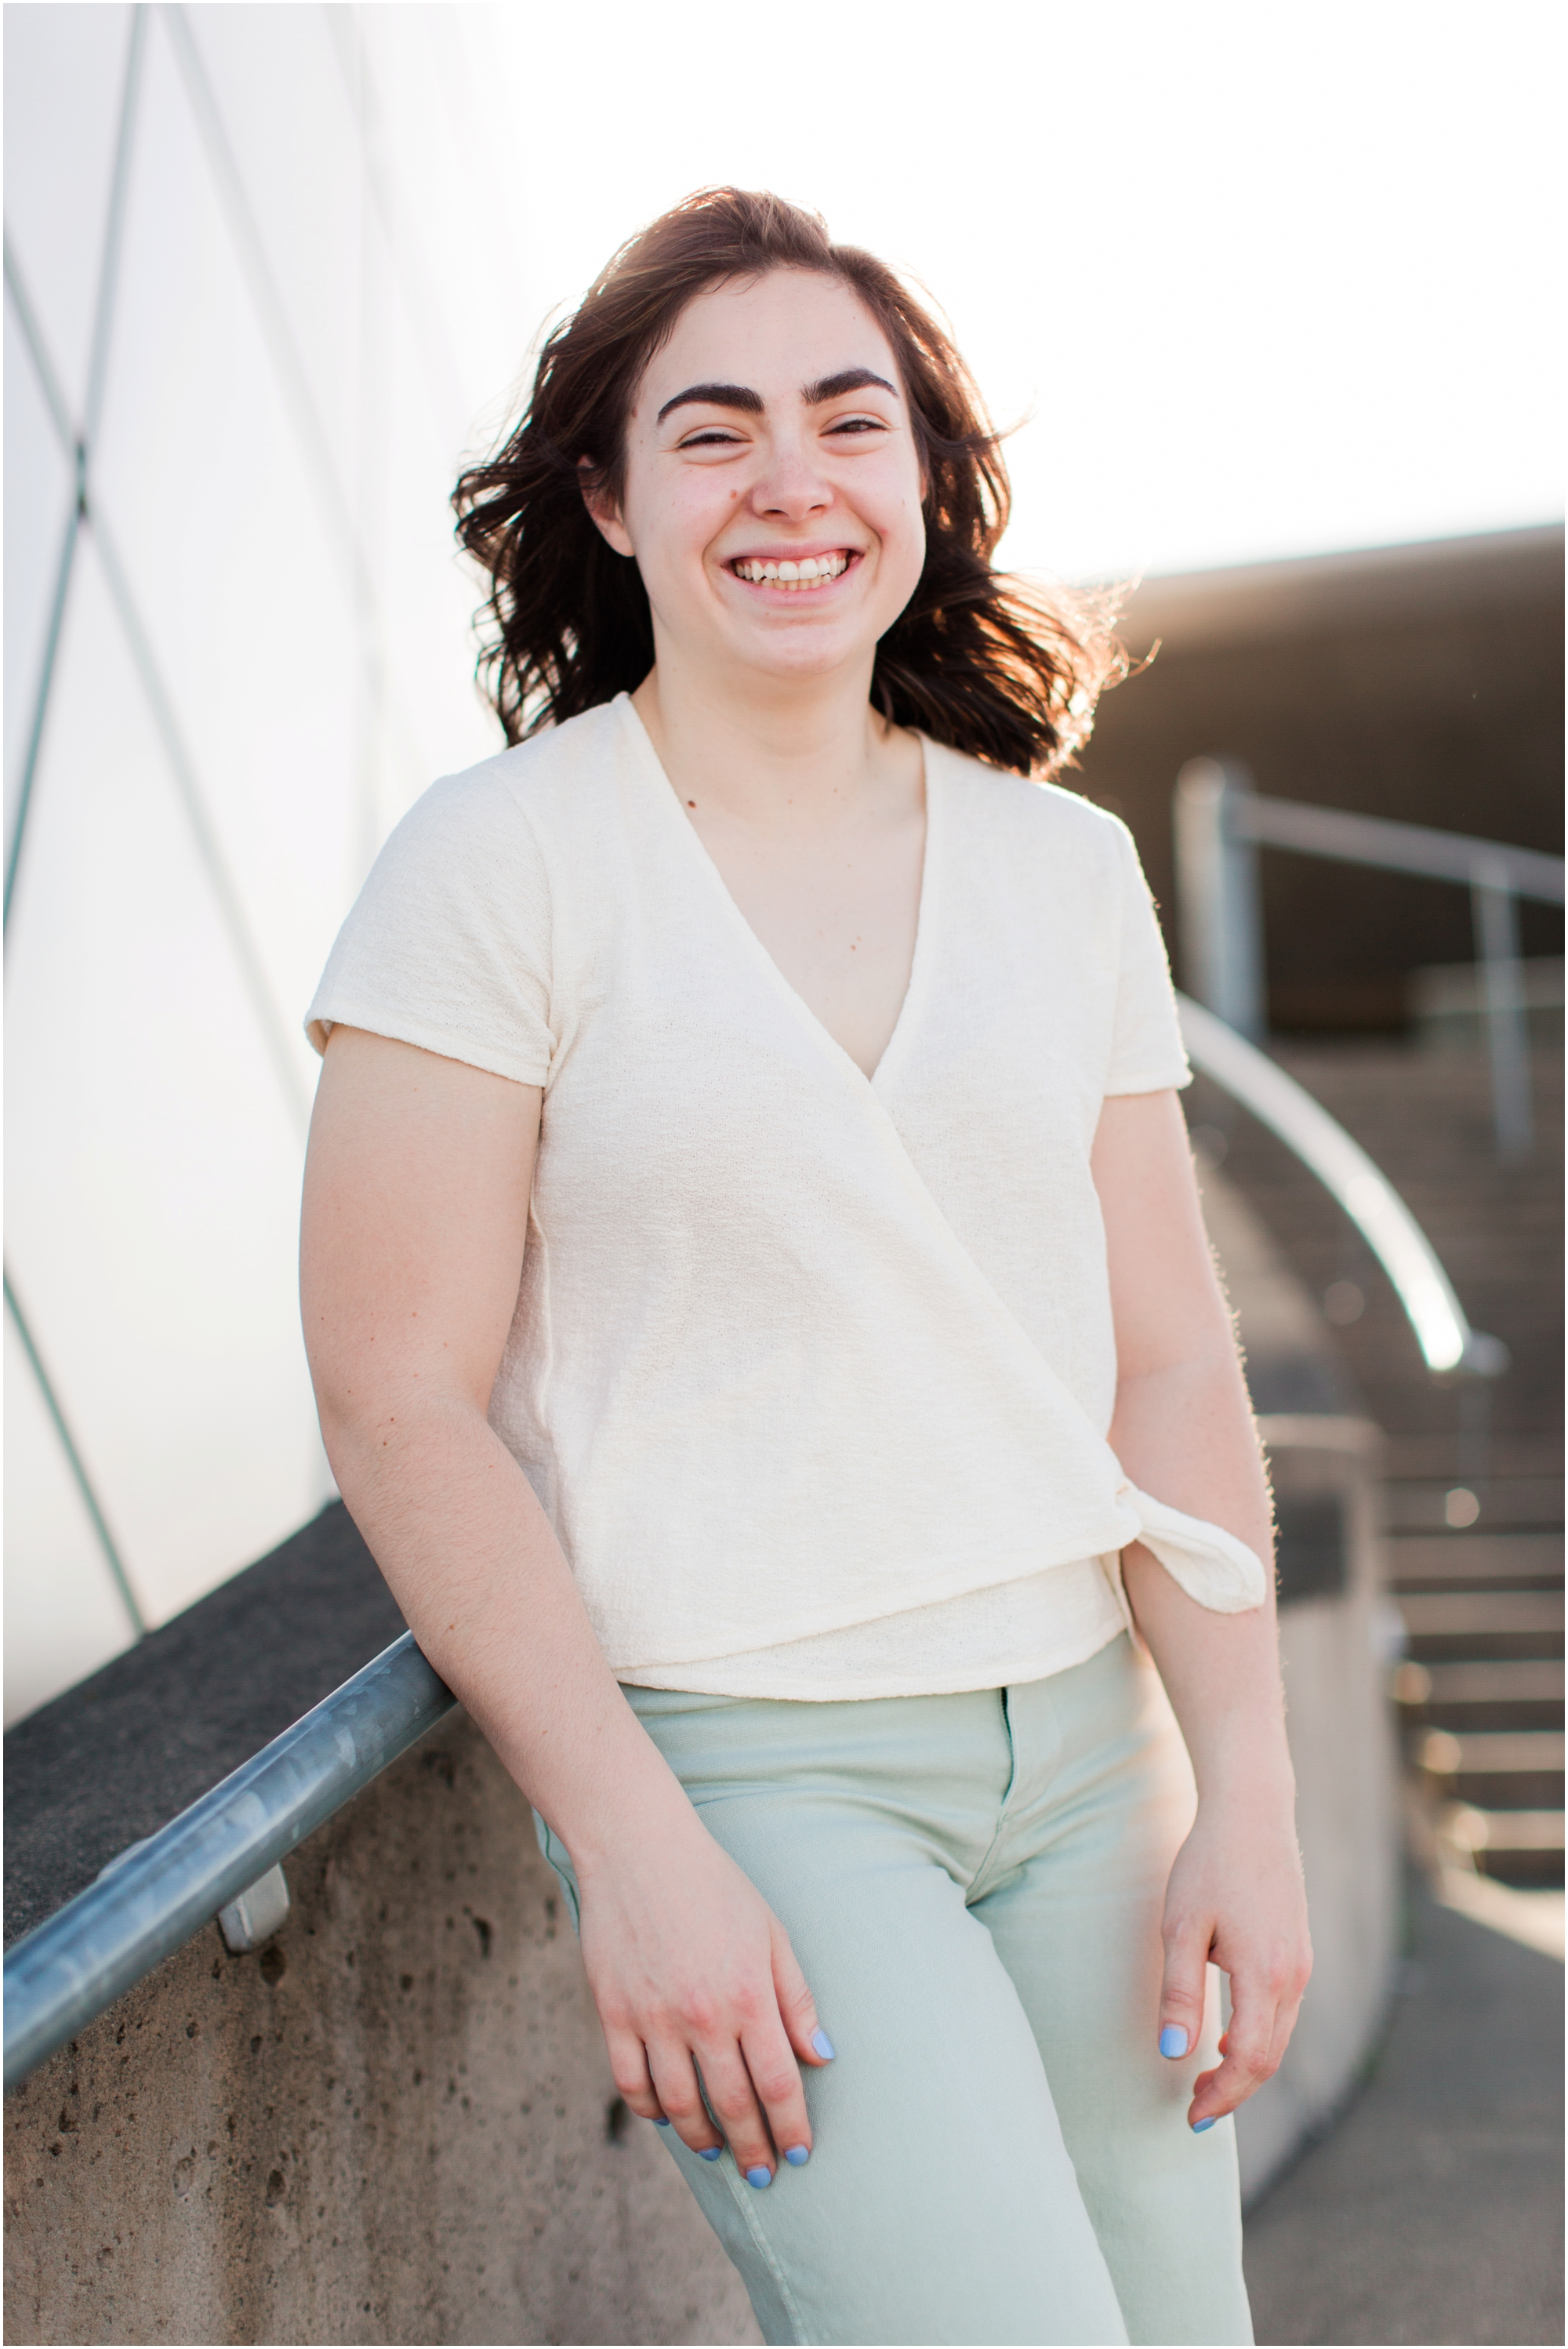 Senior portrait shoot at UW Tacoma campus and Bridge of Glass. Photos by Briana Calderon Photography based in the greater Seattle Area._1233.jpg